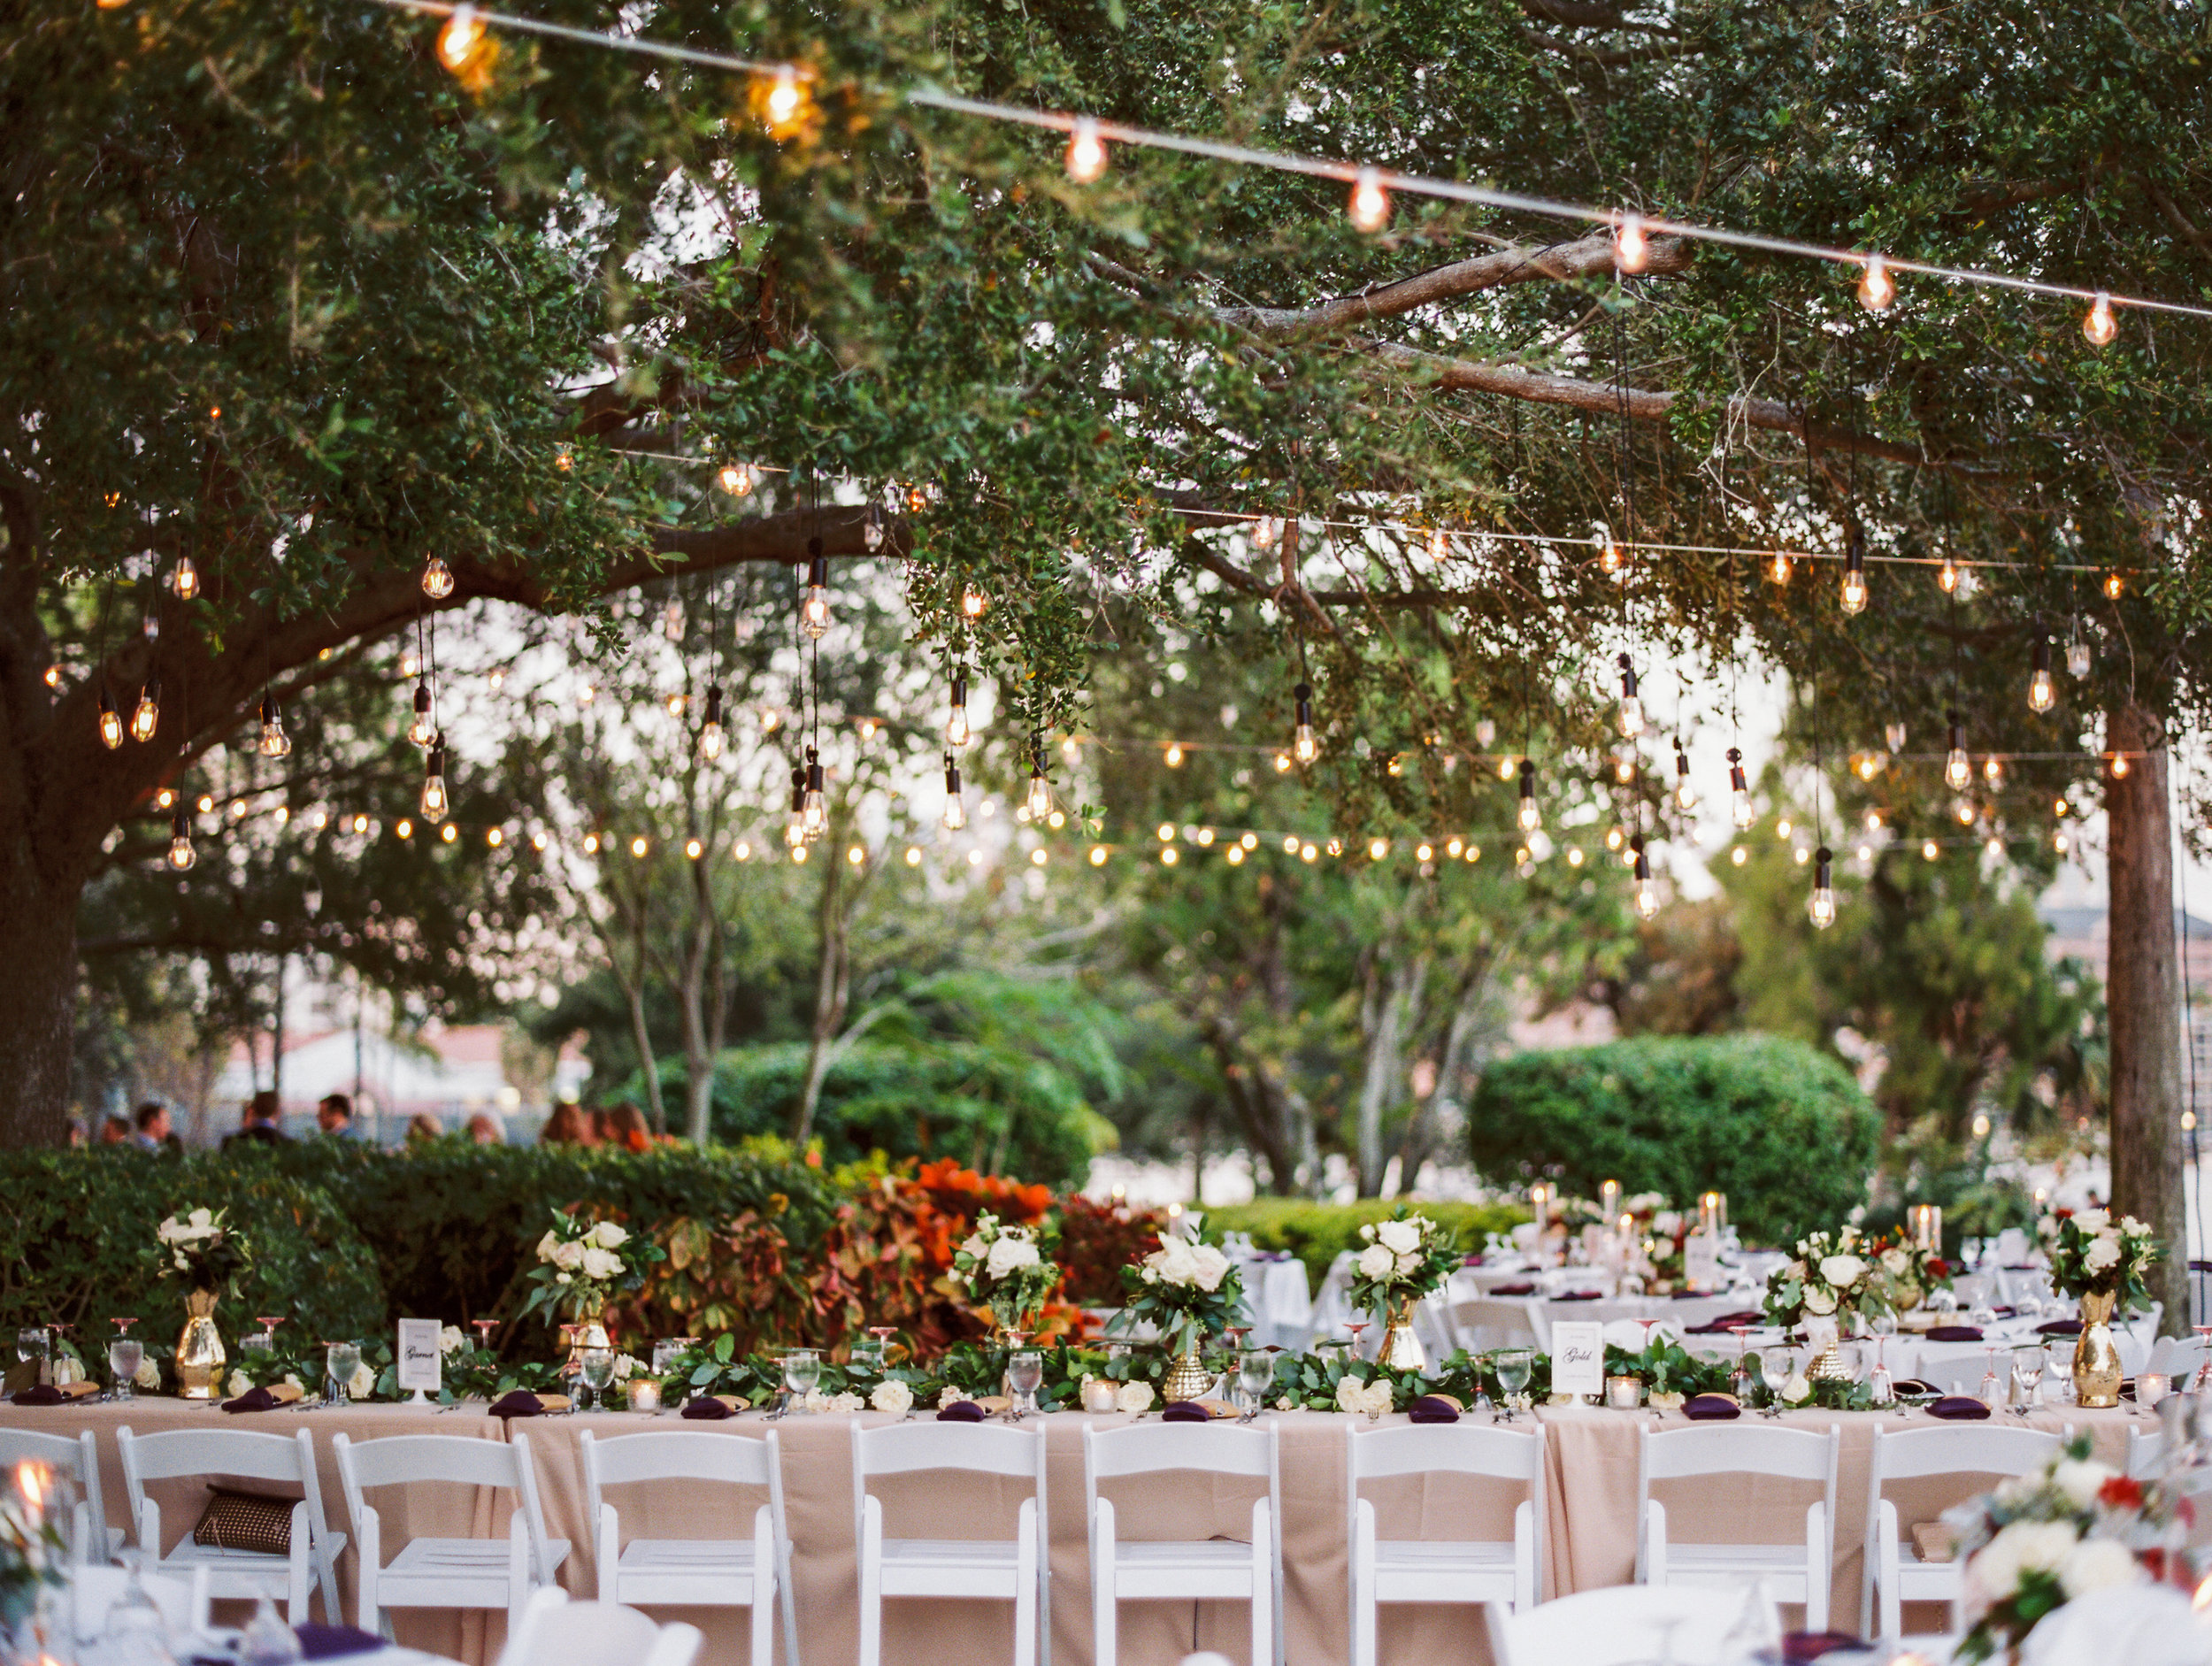 Edison lights,strung amongst the oak trees above the tables, paired with the glow of candlelight on mercury glass made this outdoor reception feel warm and romantic.